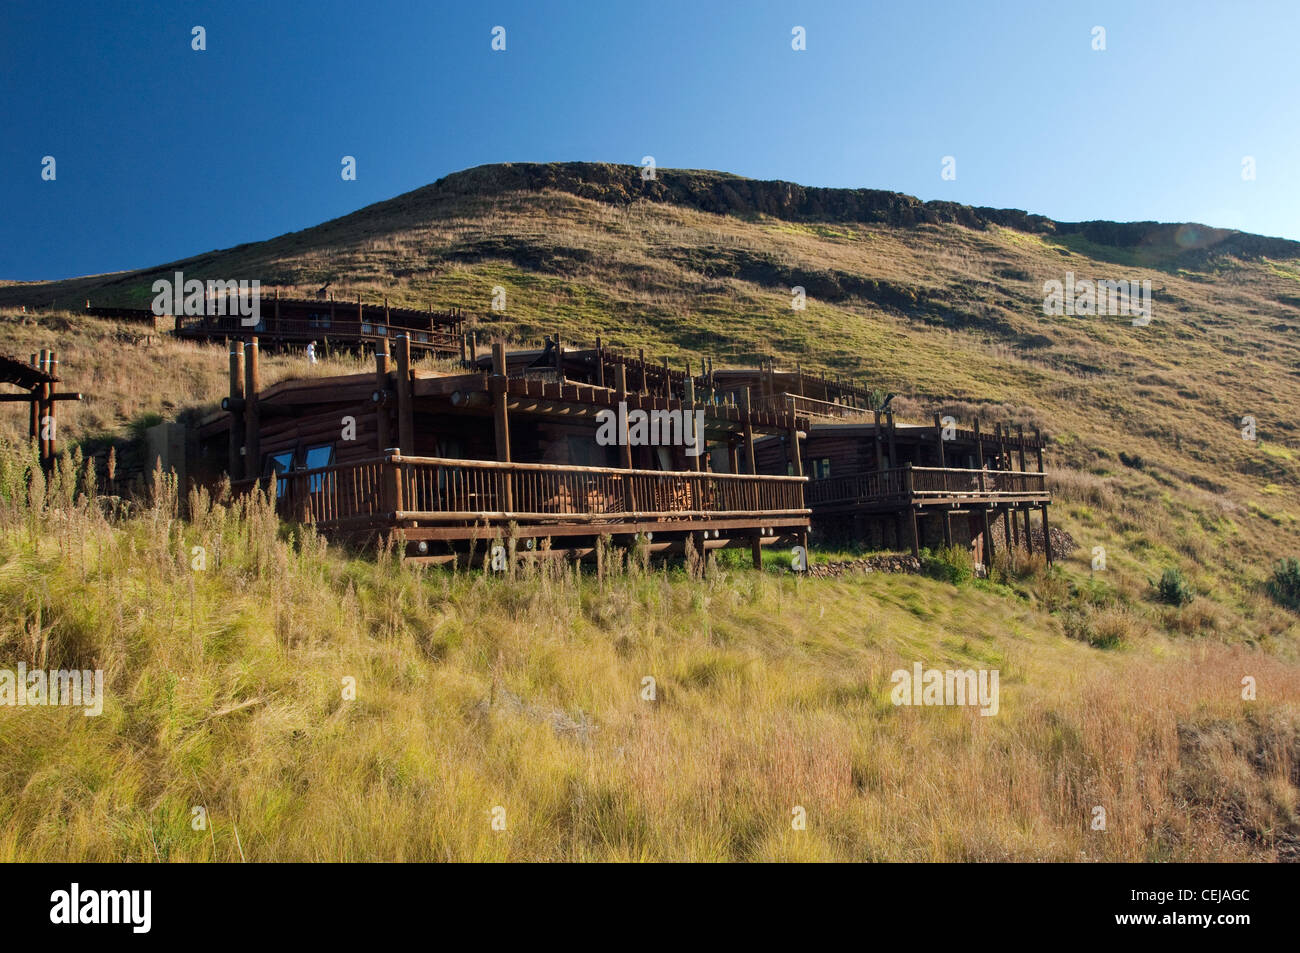 Highlands Mountain Retreat,Golden Gate,Eastern Free State Province - Stock Image